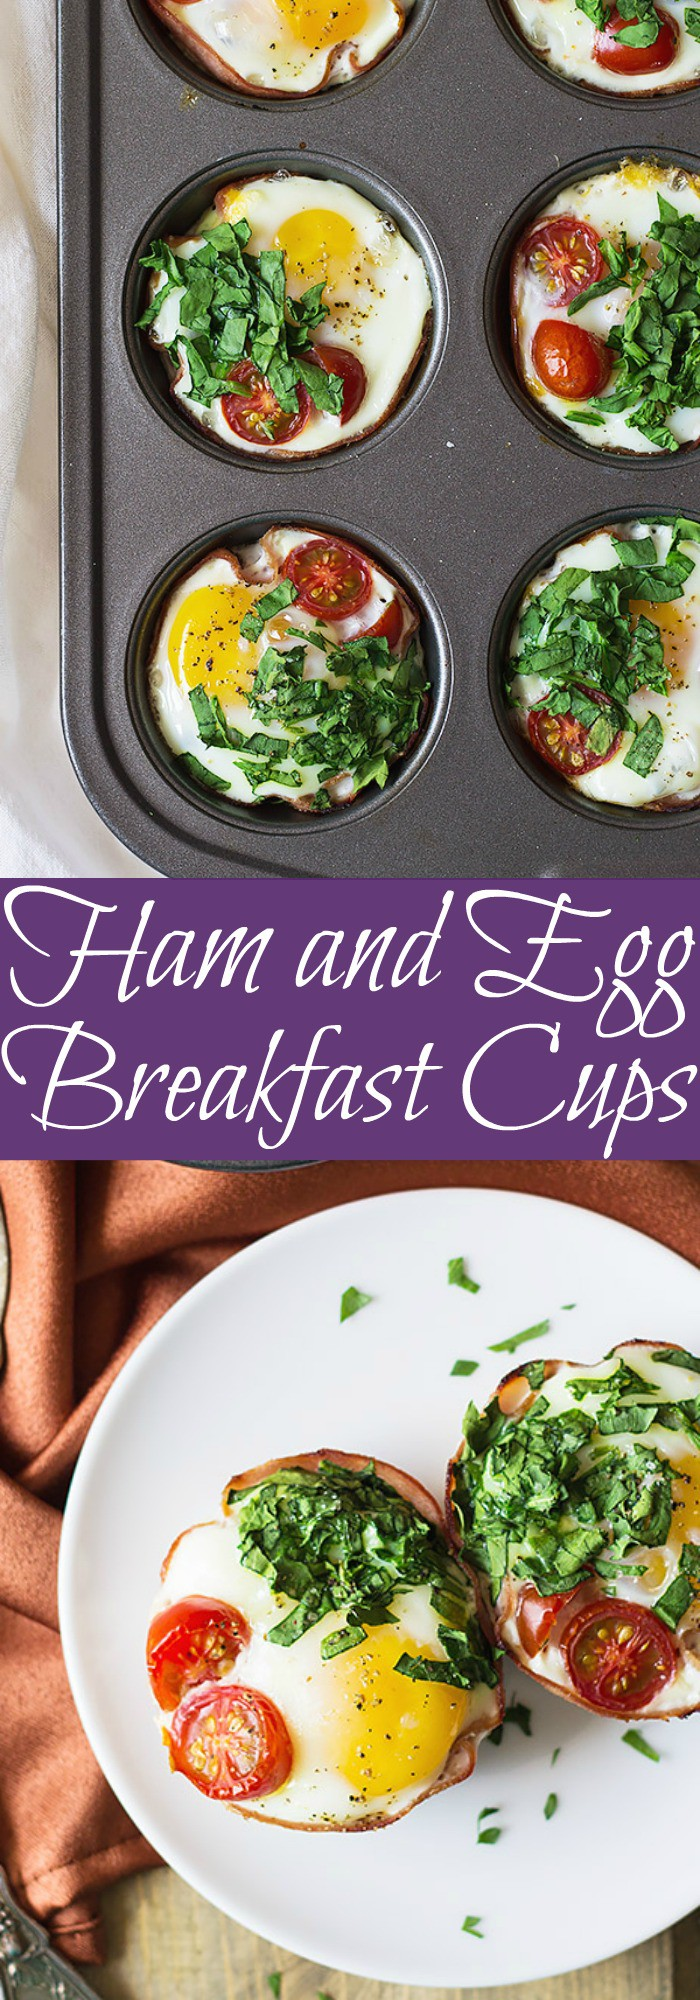 These Ham and Egg Breakfast Cups are an easy recipe that will delight the whole family! | www.countrysidecravings.com